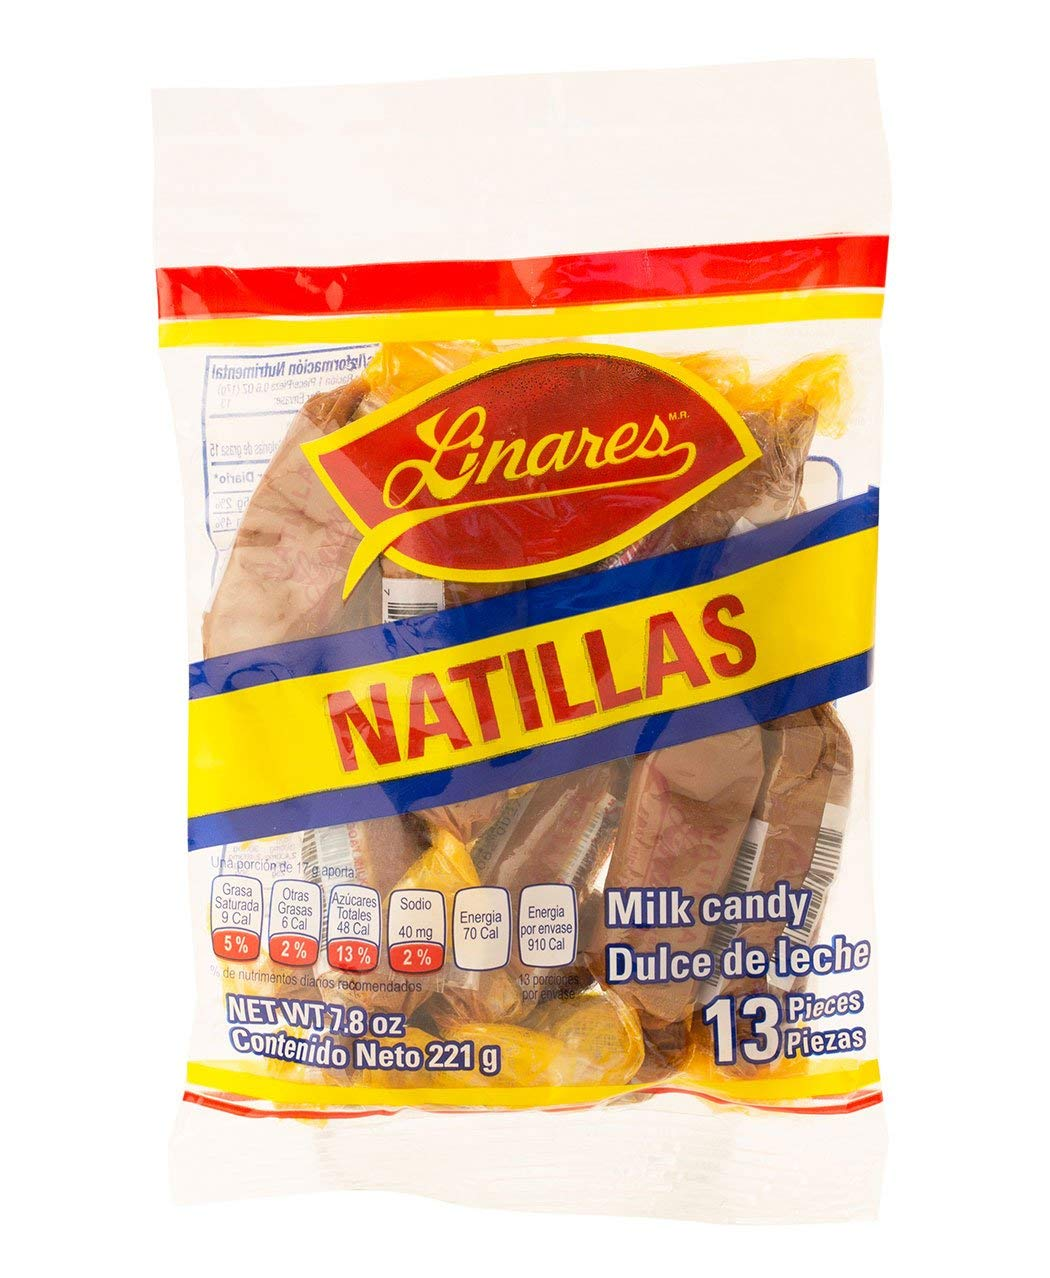 Linares Natilla Milk Candy 4-Pack (13 pieces of .6 Oz. per pack) GLUTEN FREE